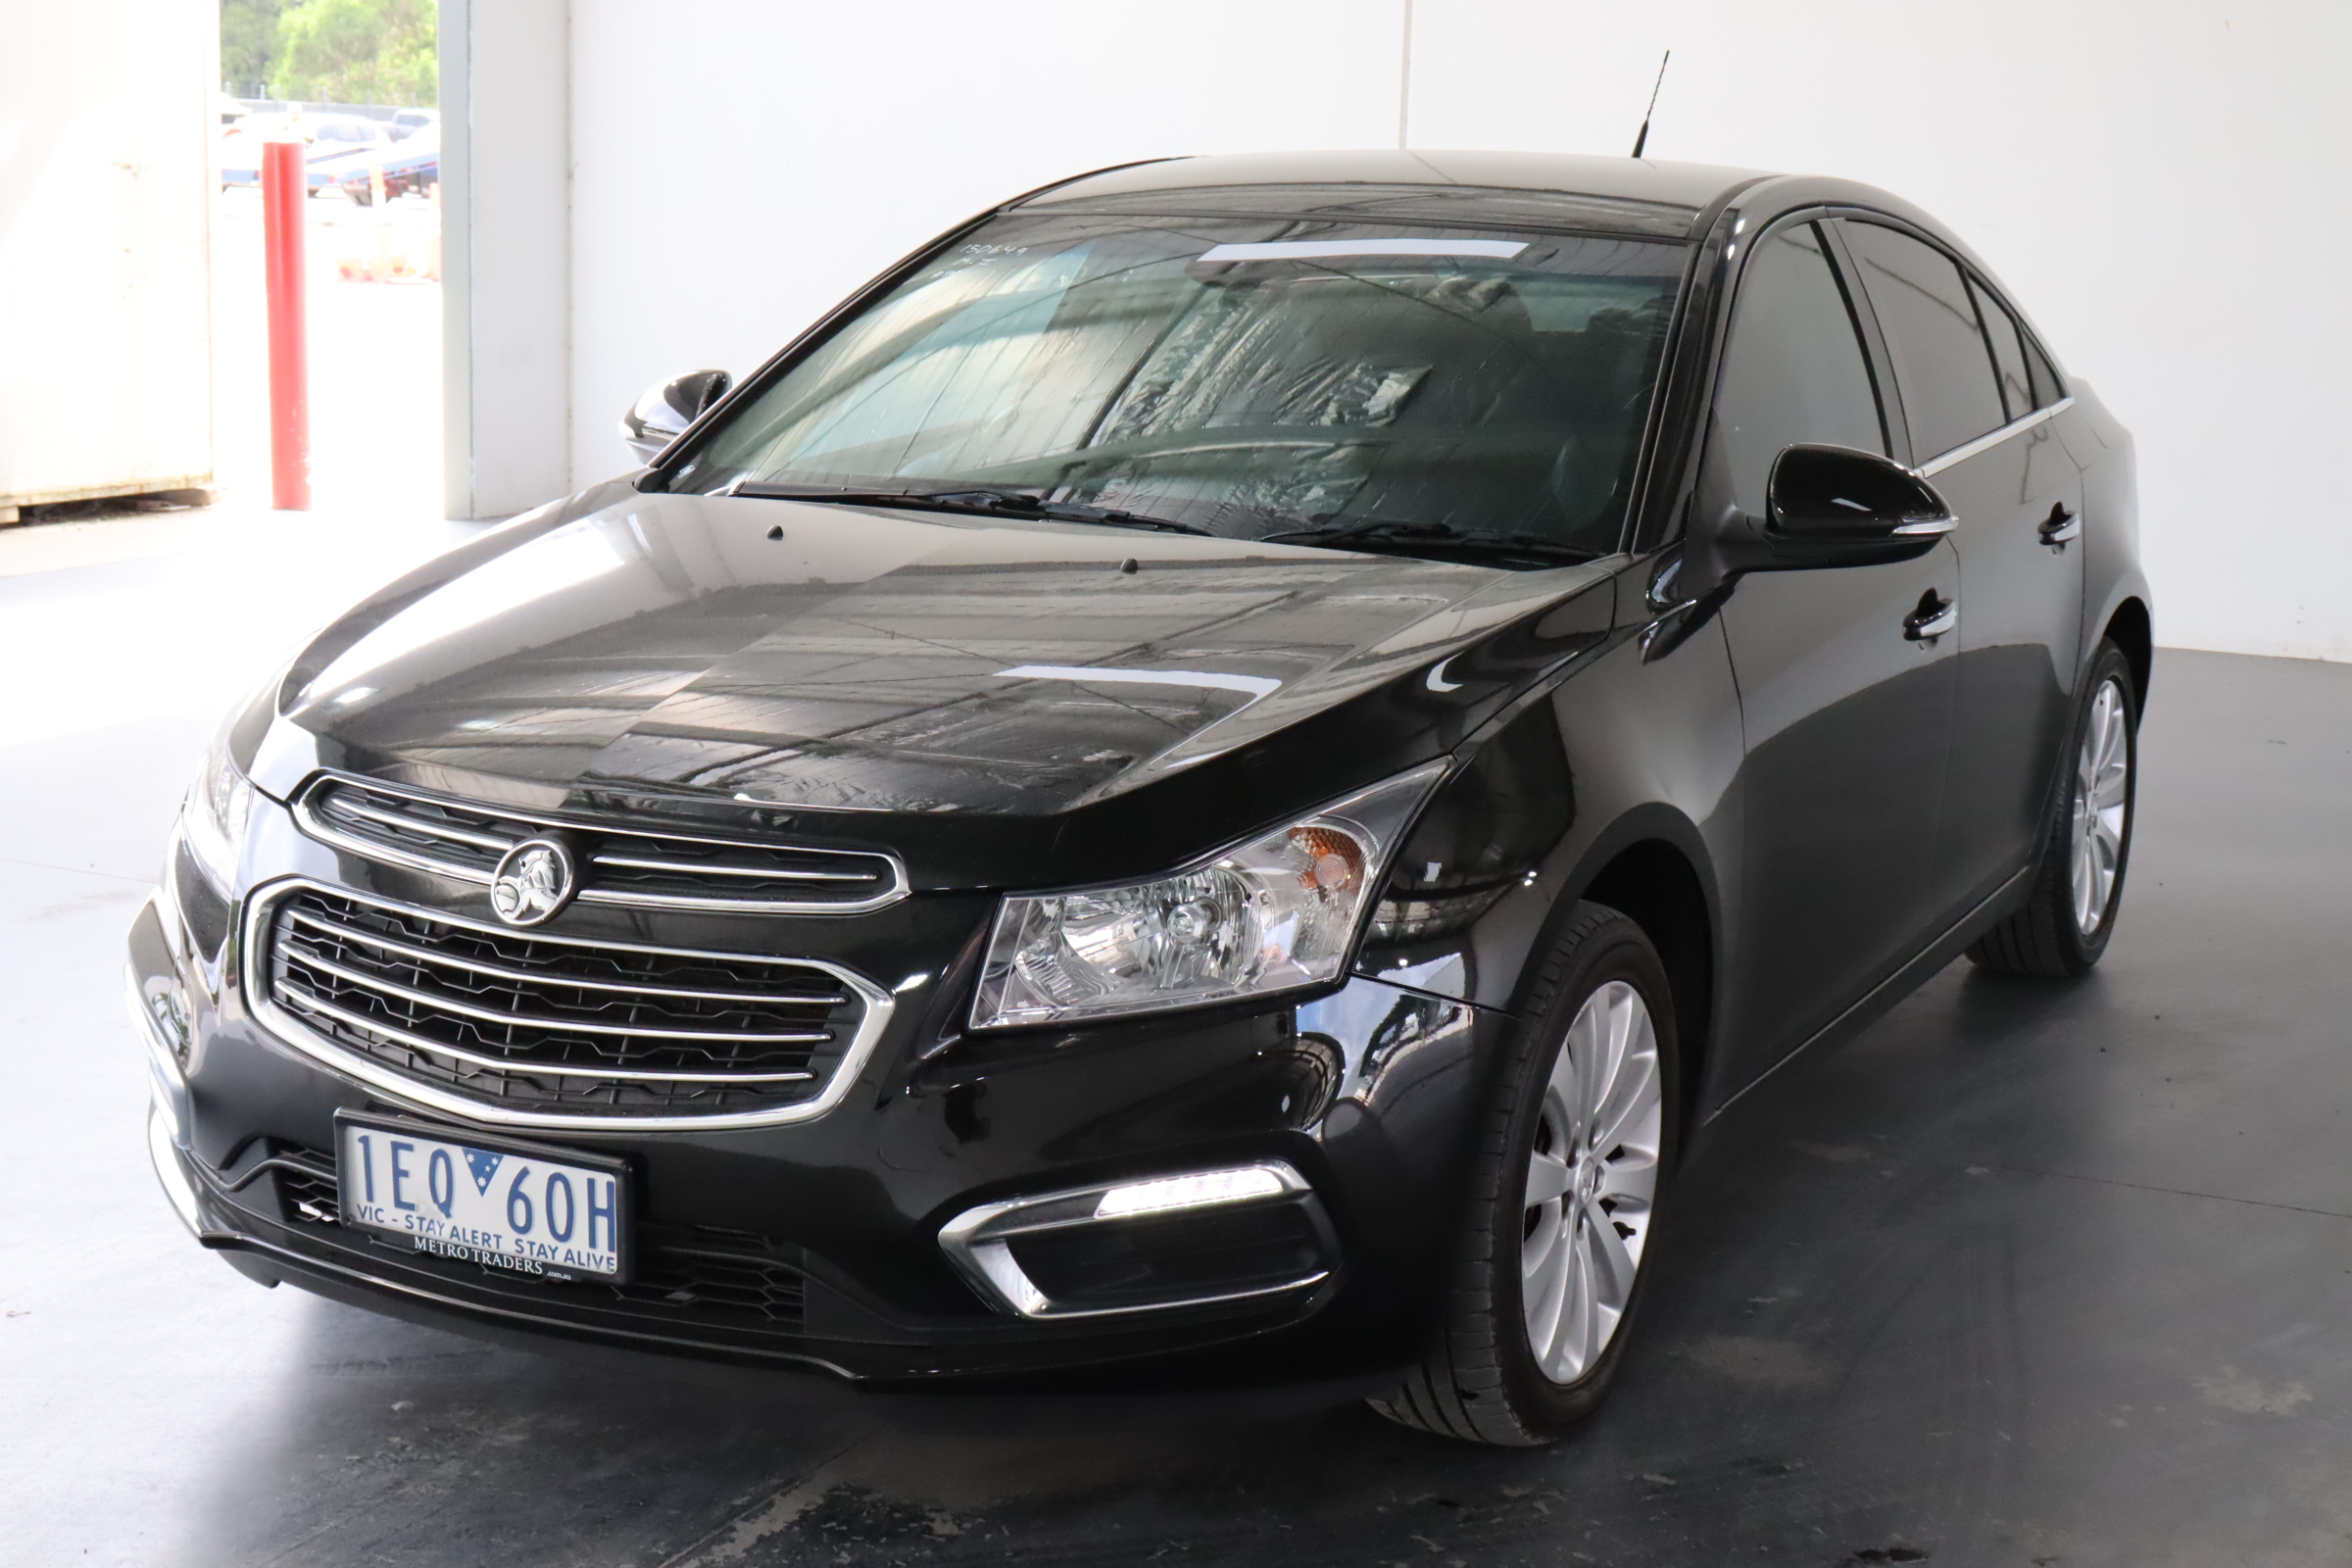 2015 Holden Cruze CDX JH Automatic Sedan